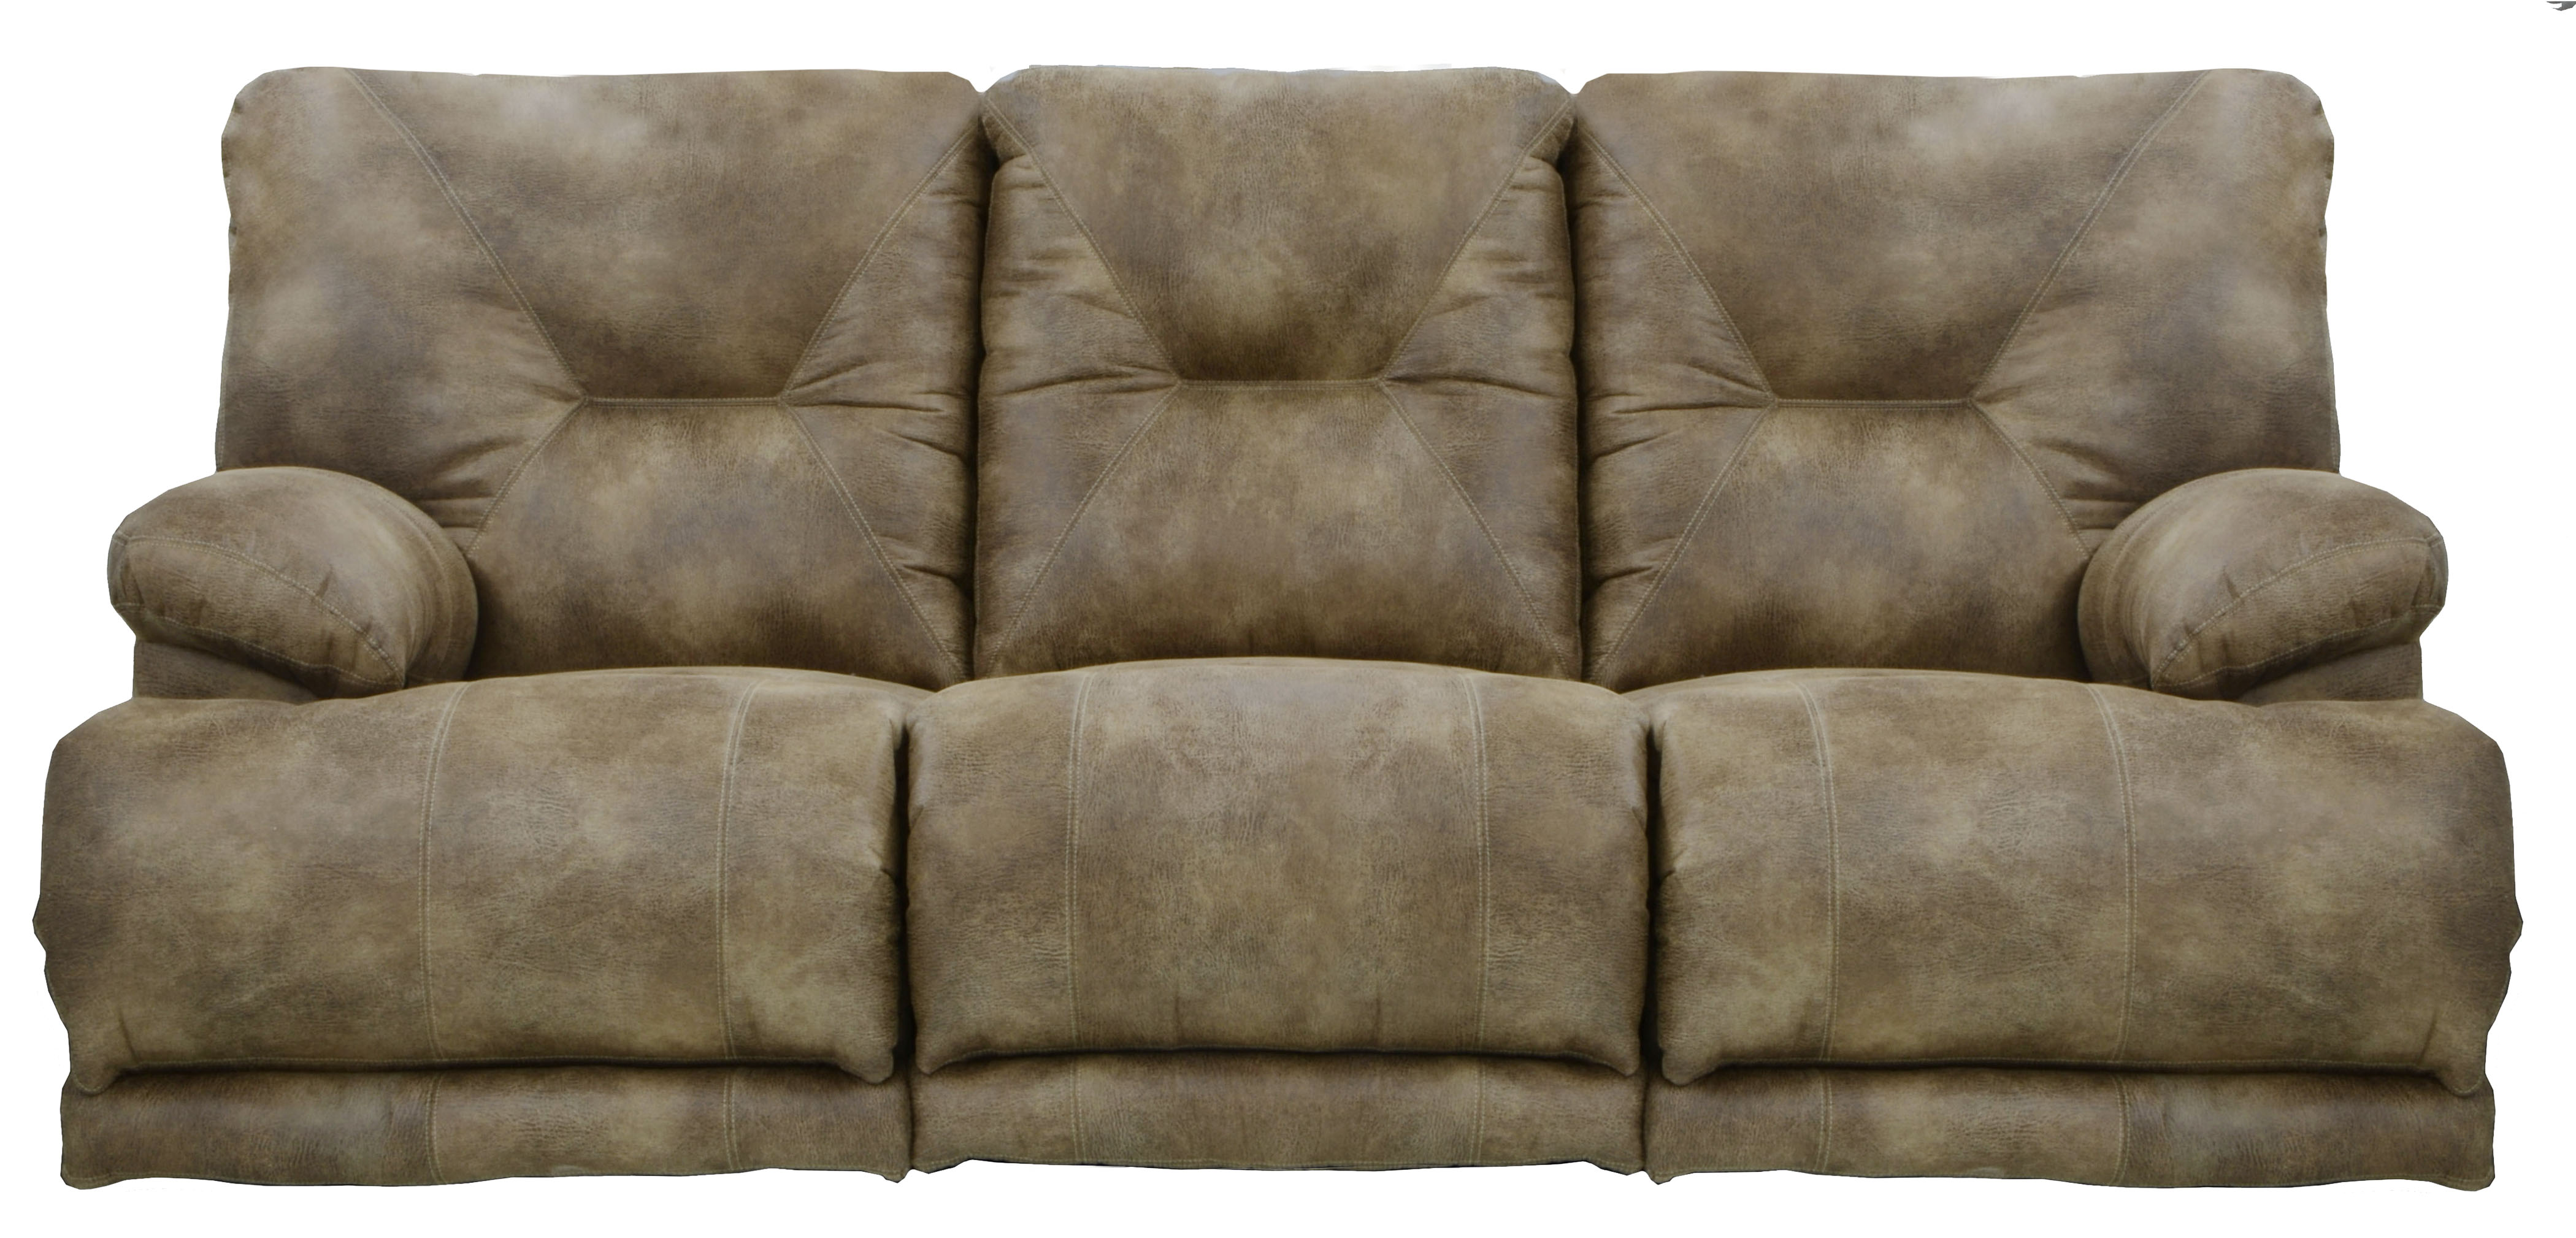 438 Voyager Sofa in Brandy